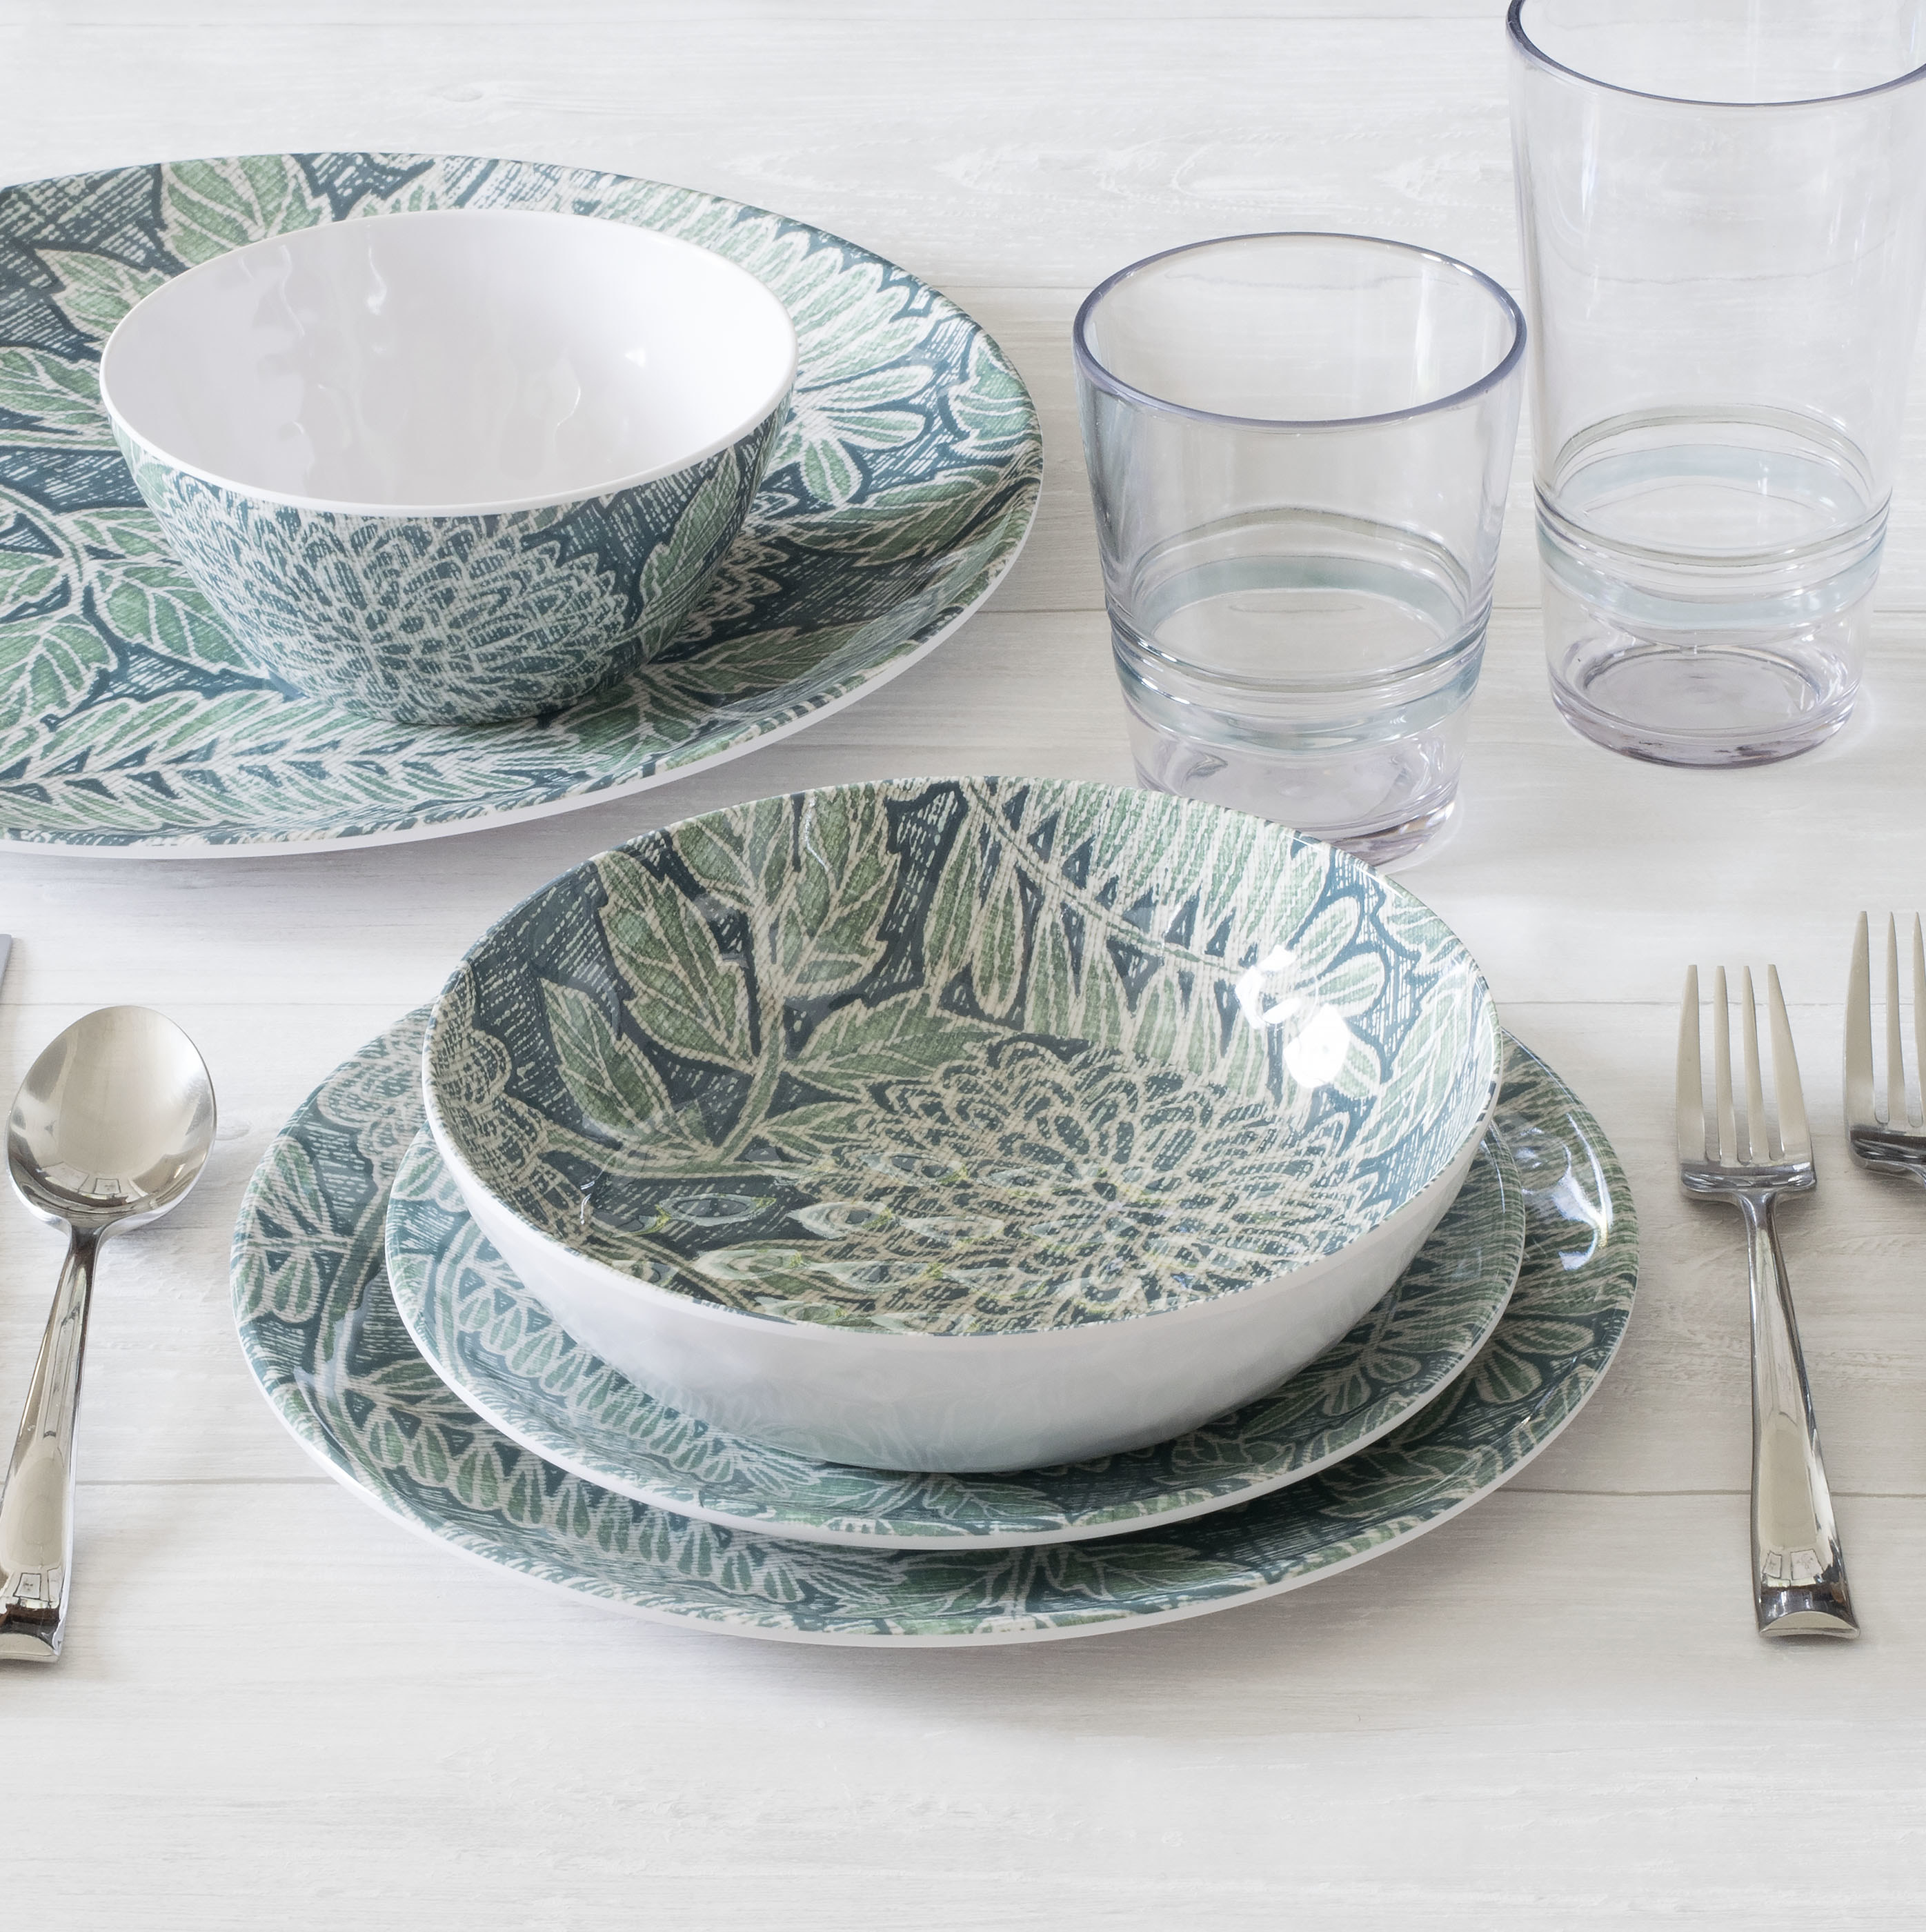 the melamine dishes and bowls with a green and blue leafy pattern inside